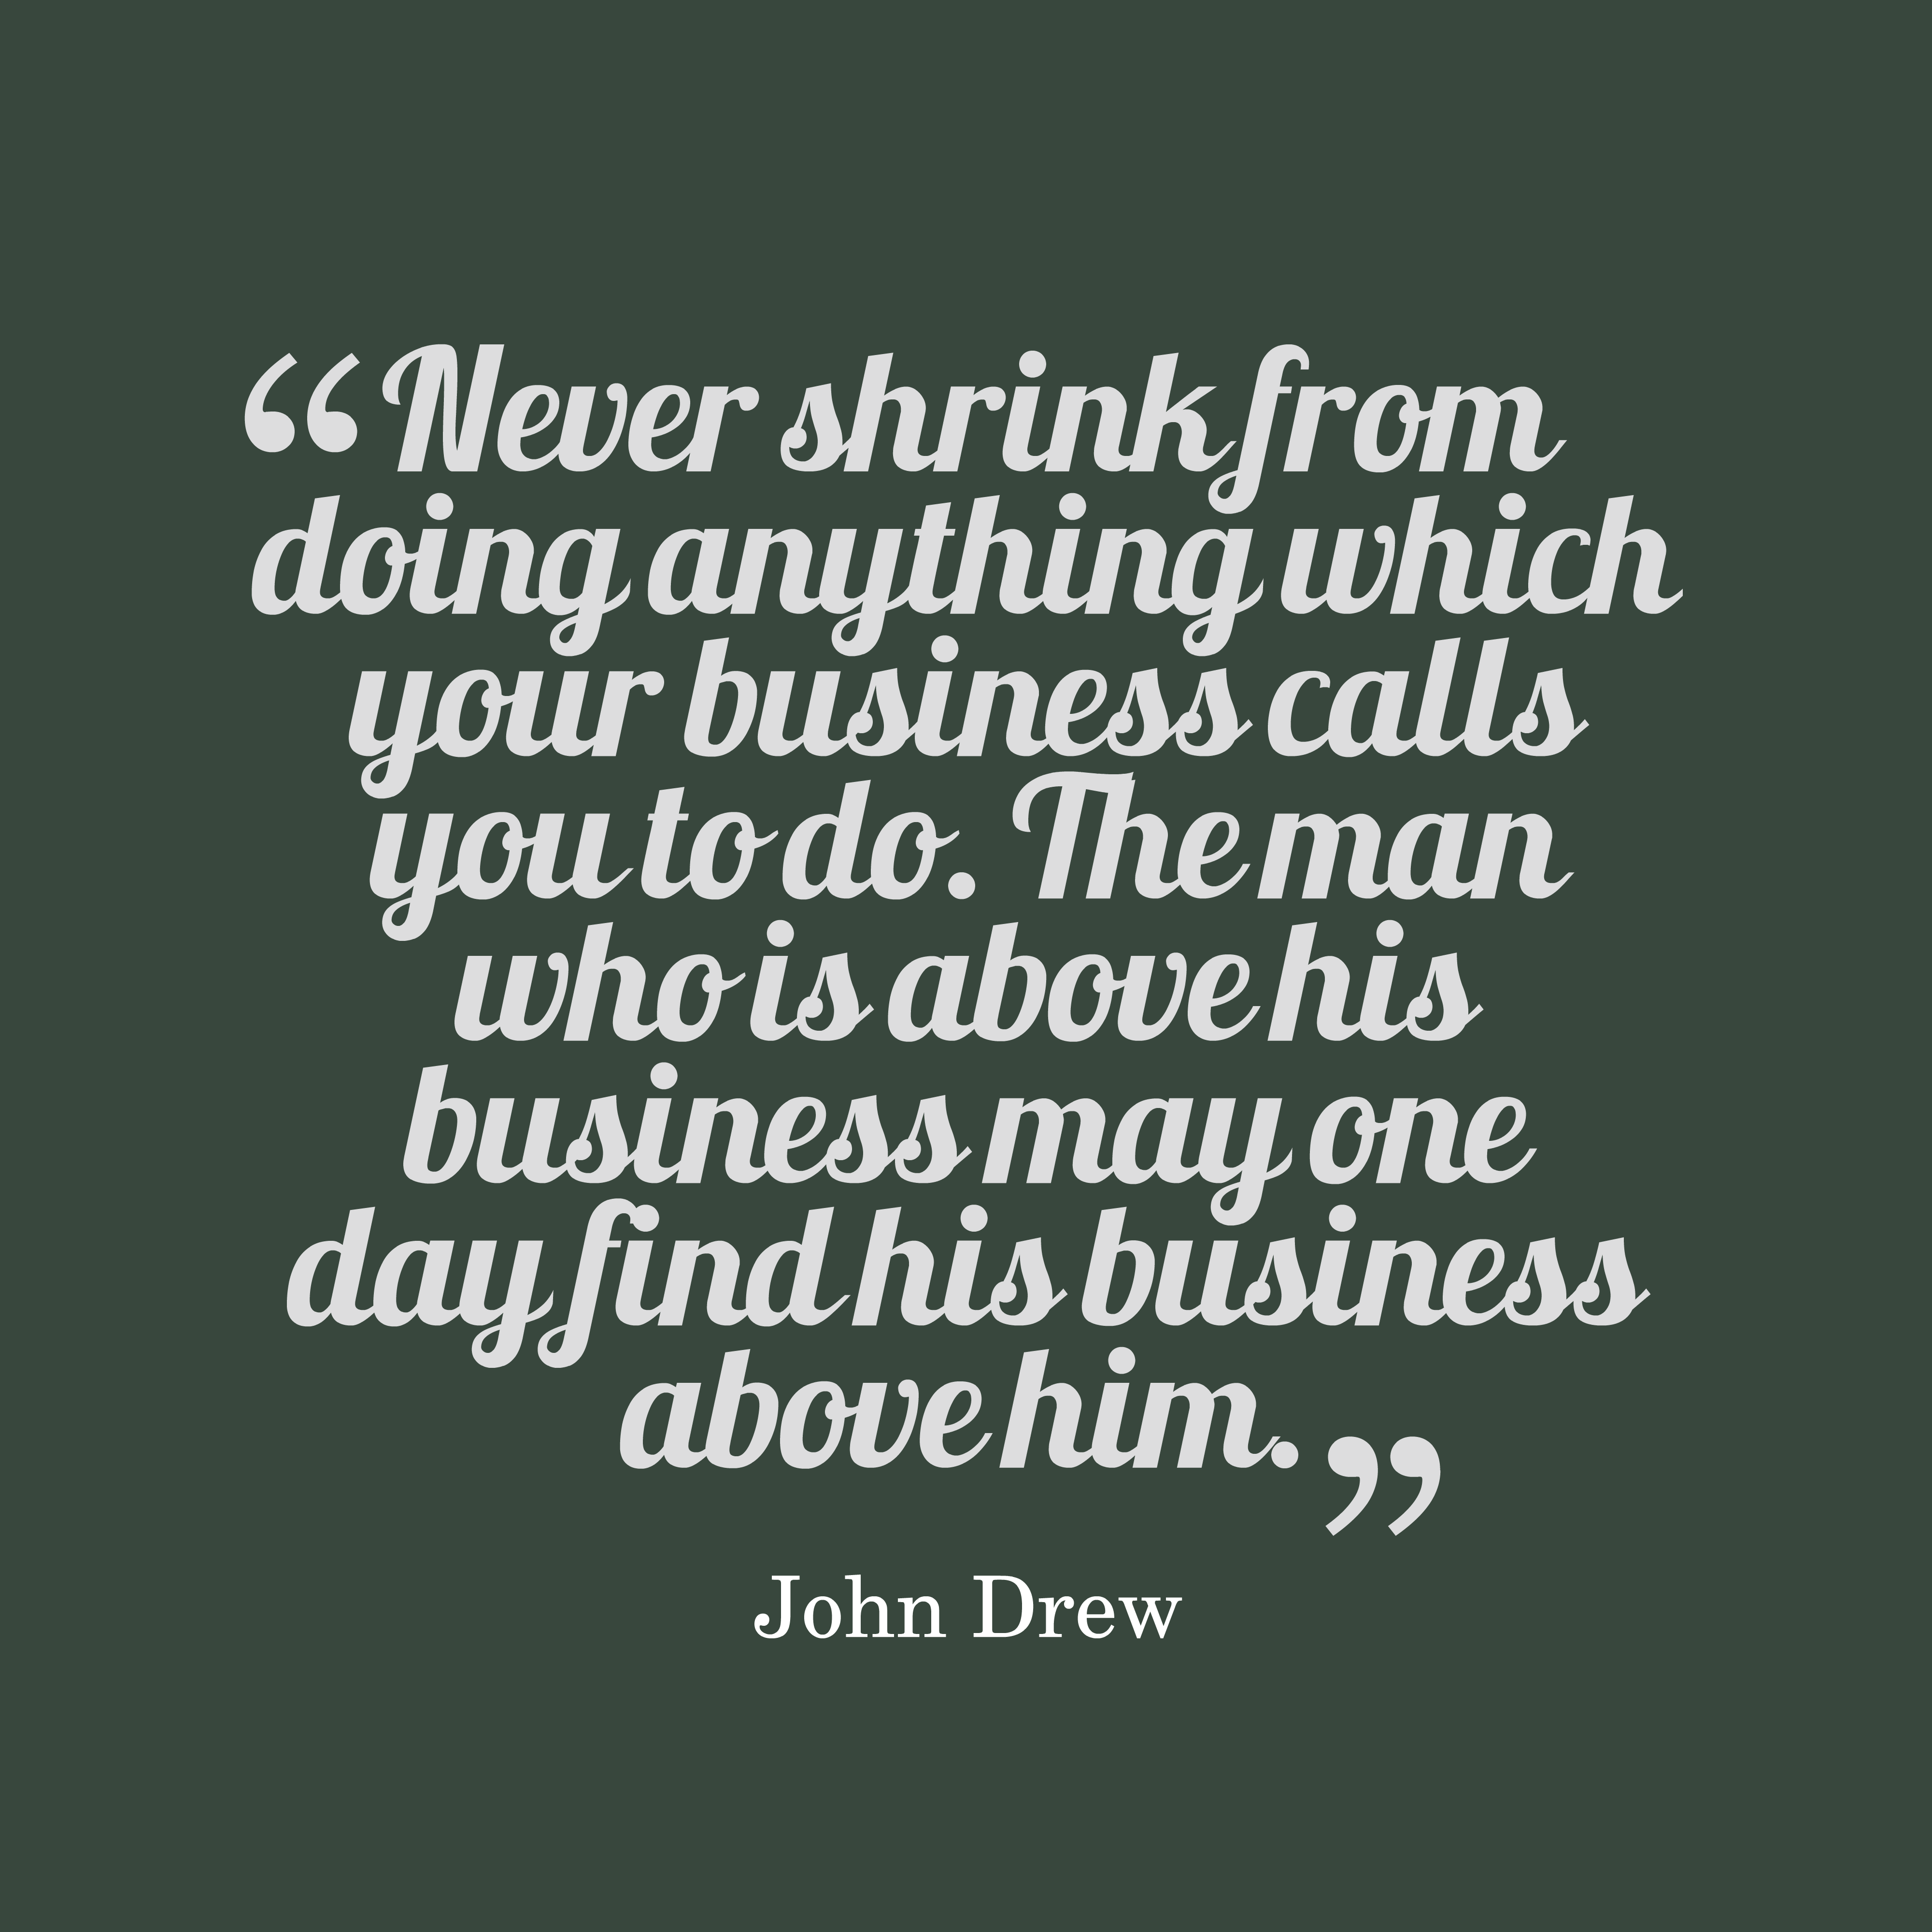 Quotes image of Never shrink from doing anything which your business calls you to do. The man who is above his business may one day find his business above him.